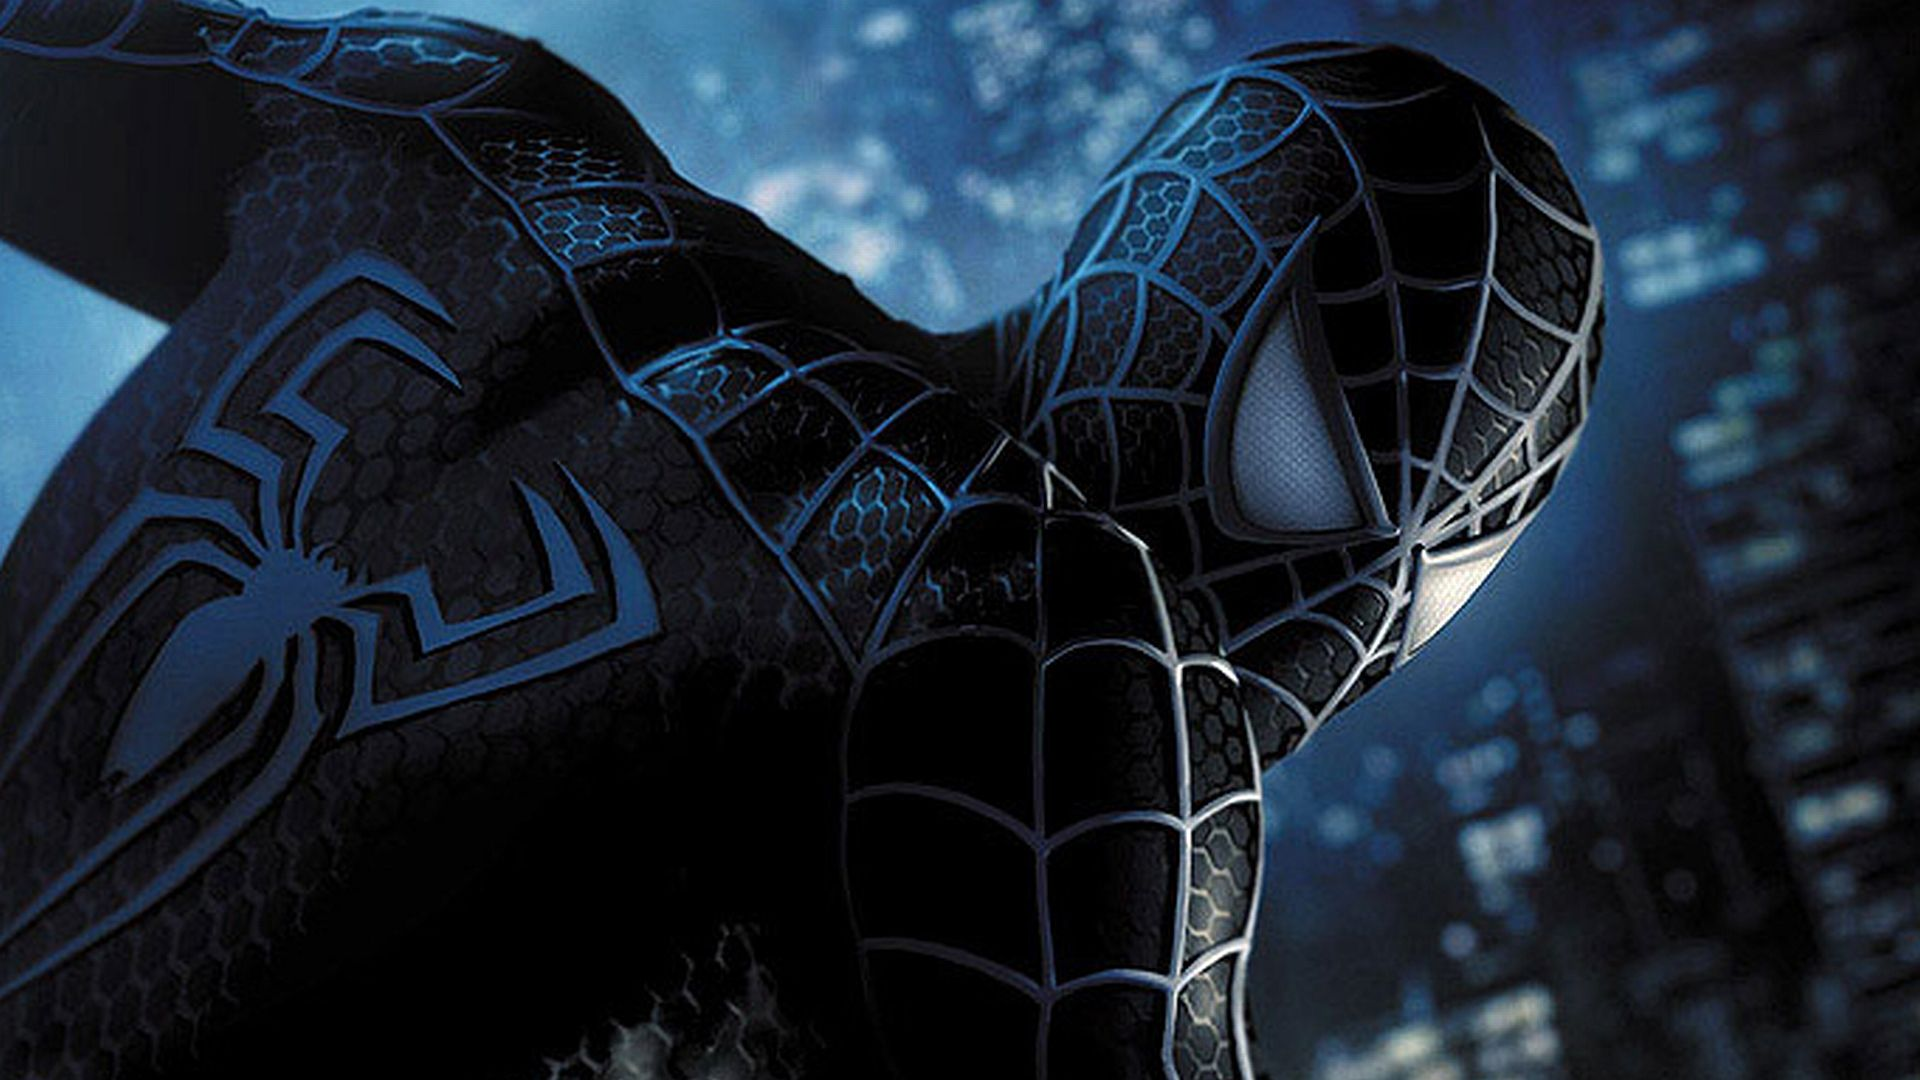 Hd wallpaper spiderman - 135 Spider Man Wallpapers Spider Man Backgrounds Page 3 Hight Definition